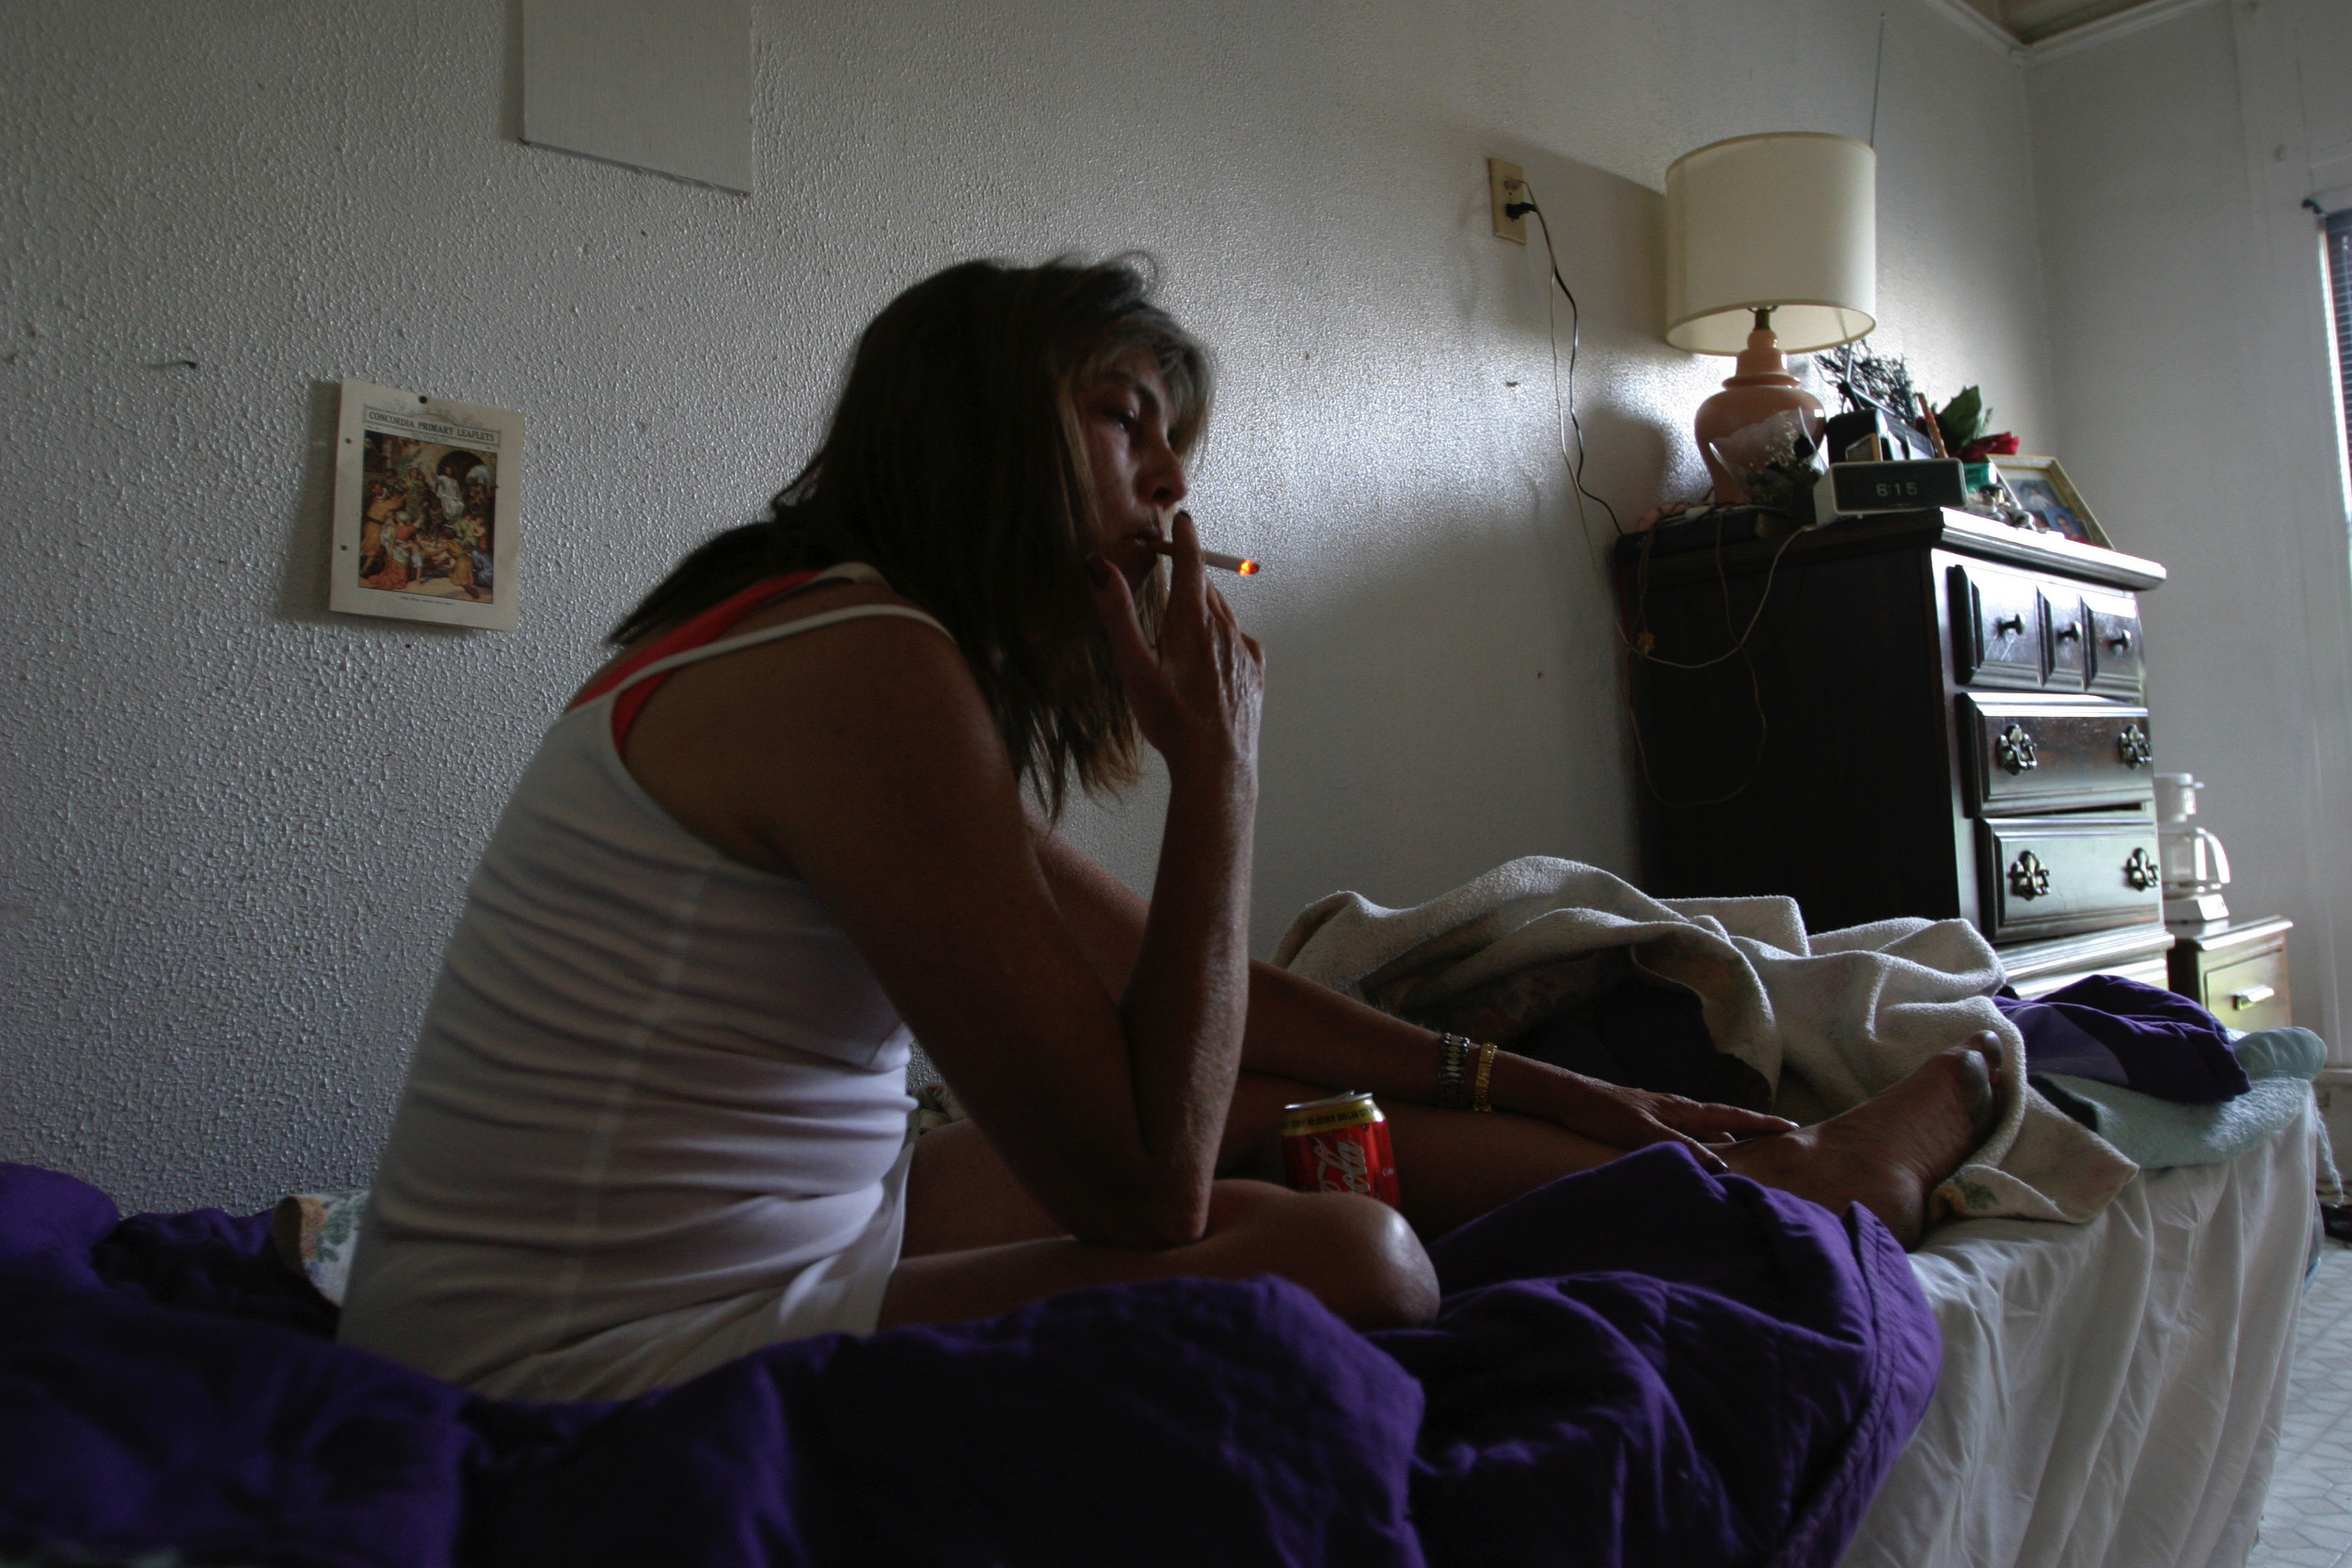 Cynthia has a smoke on her bed at the Drake guesthouse, formerly an upscale hotel in Carthage, Missouri along Route 66, now a group home for mentally and physically disabled.